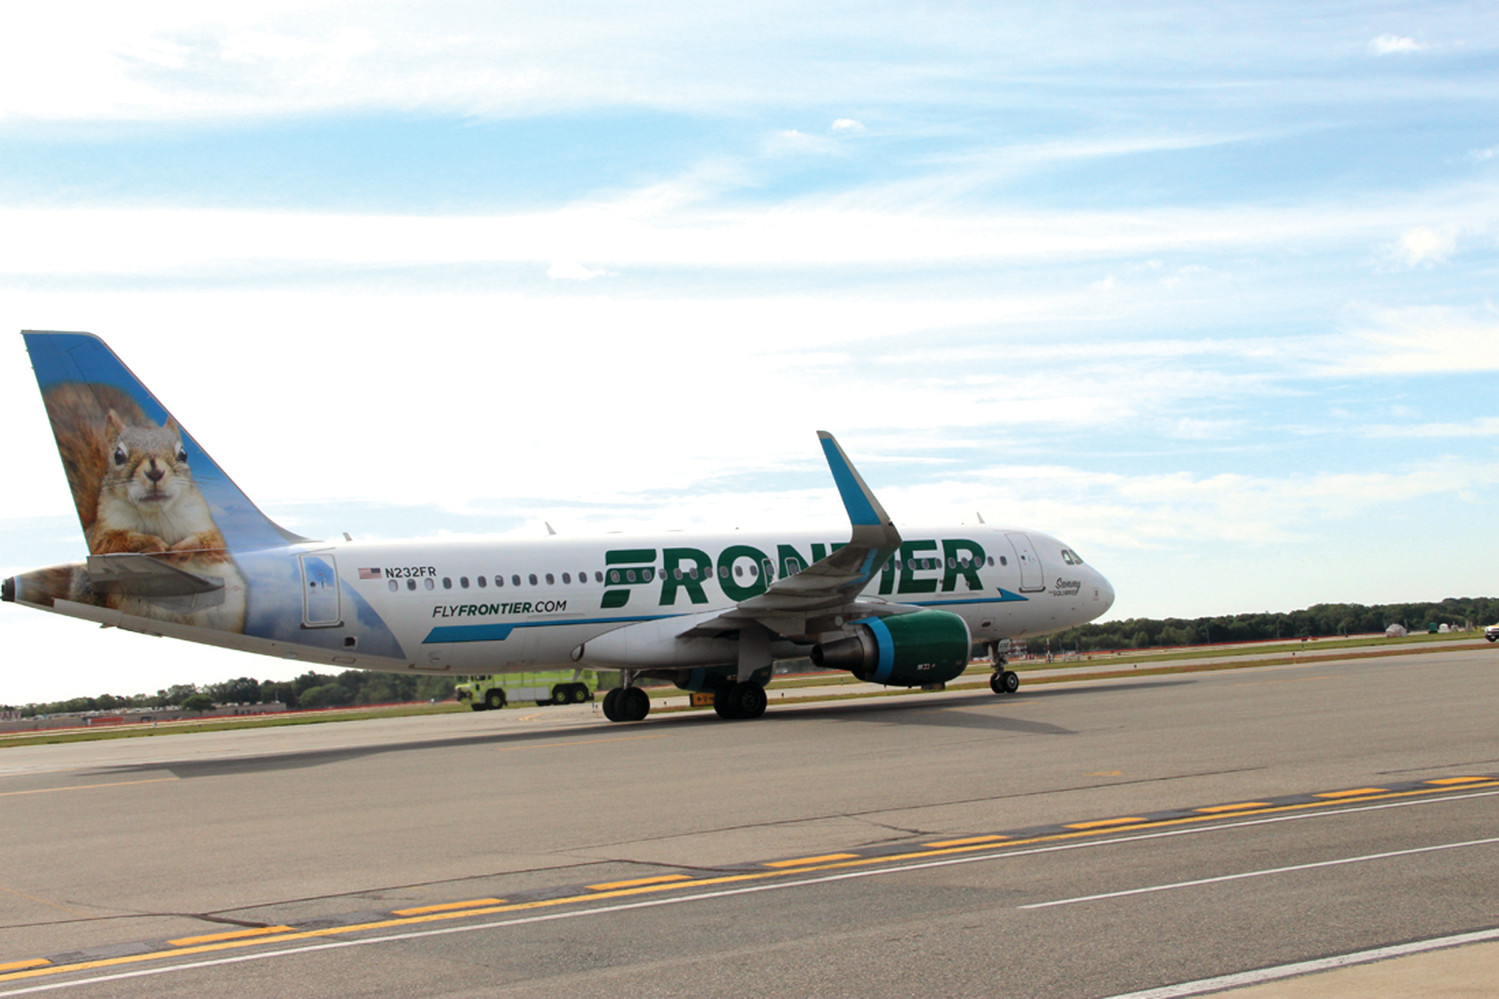 FUEL TAX INCOMING?: A Frontier jet taxis on the runway at Green during its inaugural flight at the airport.